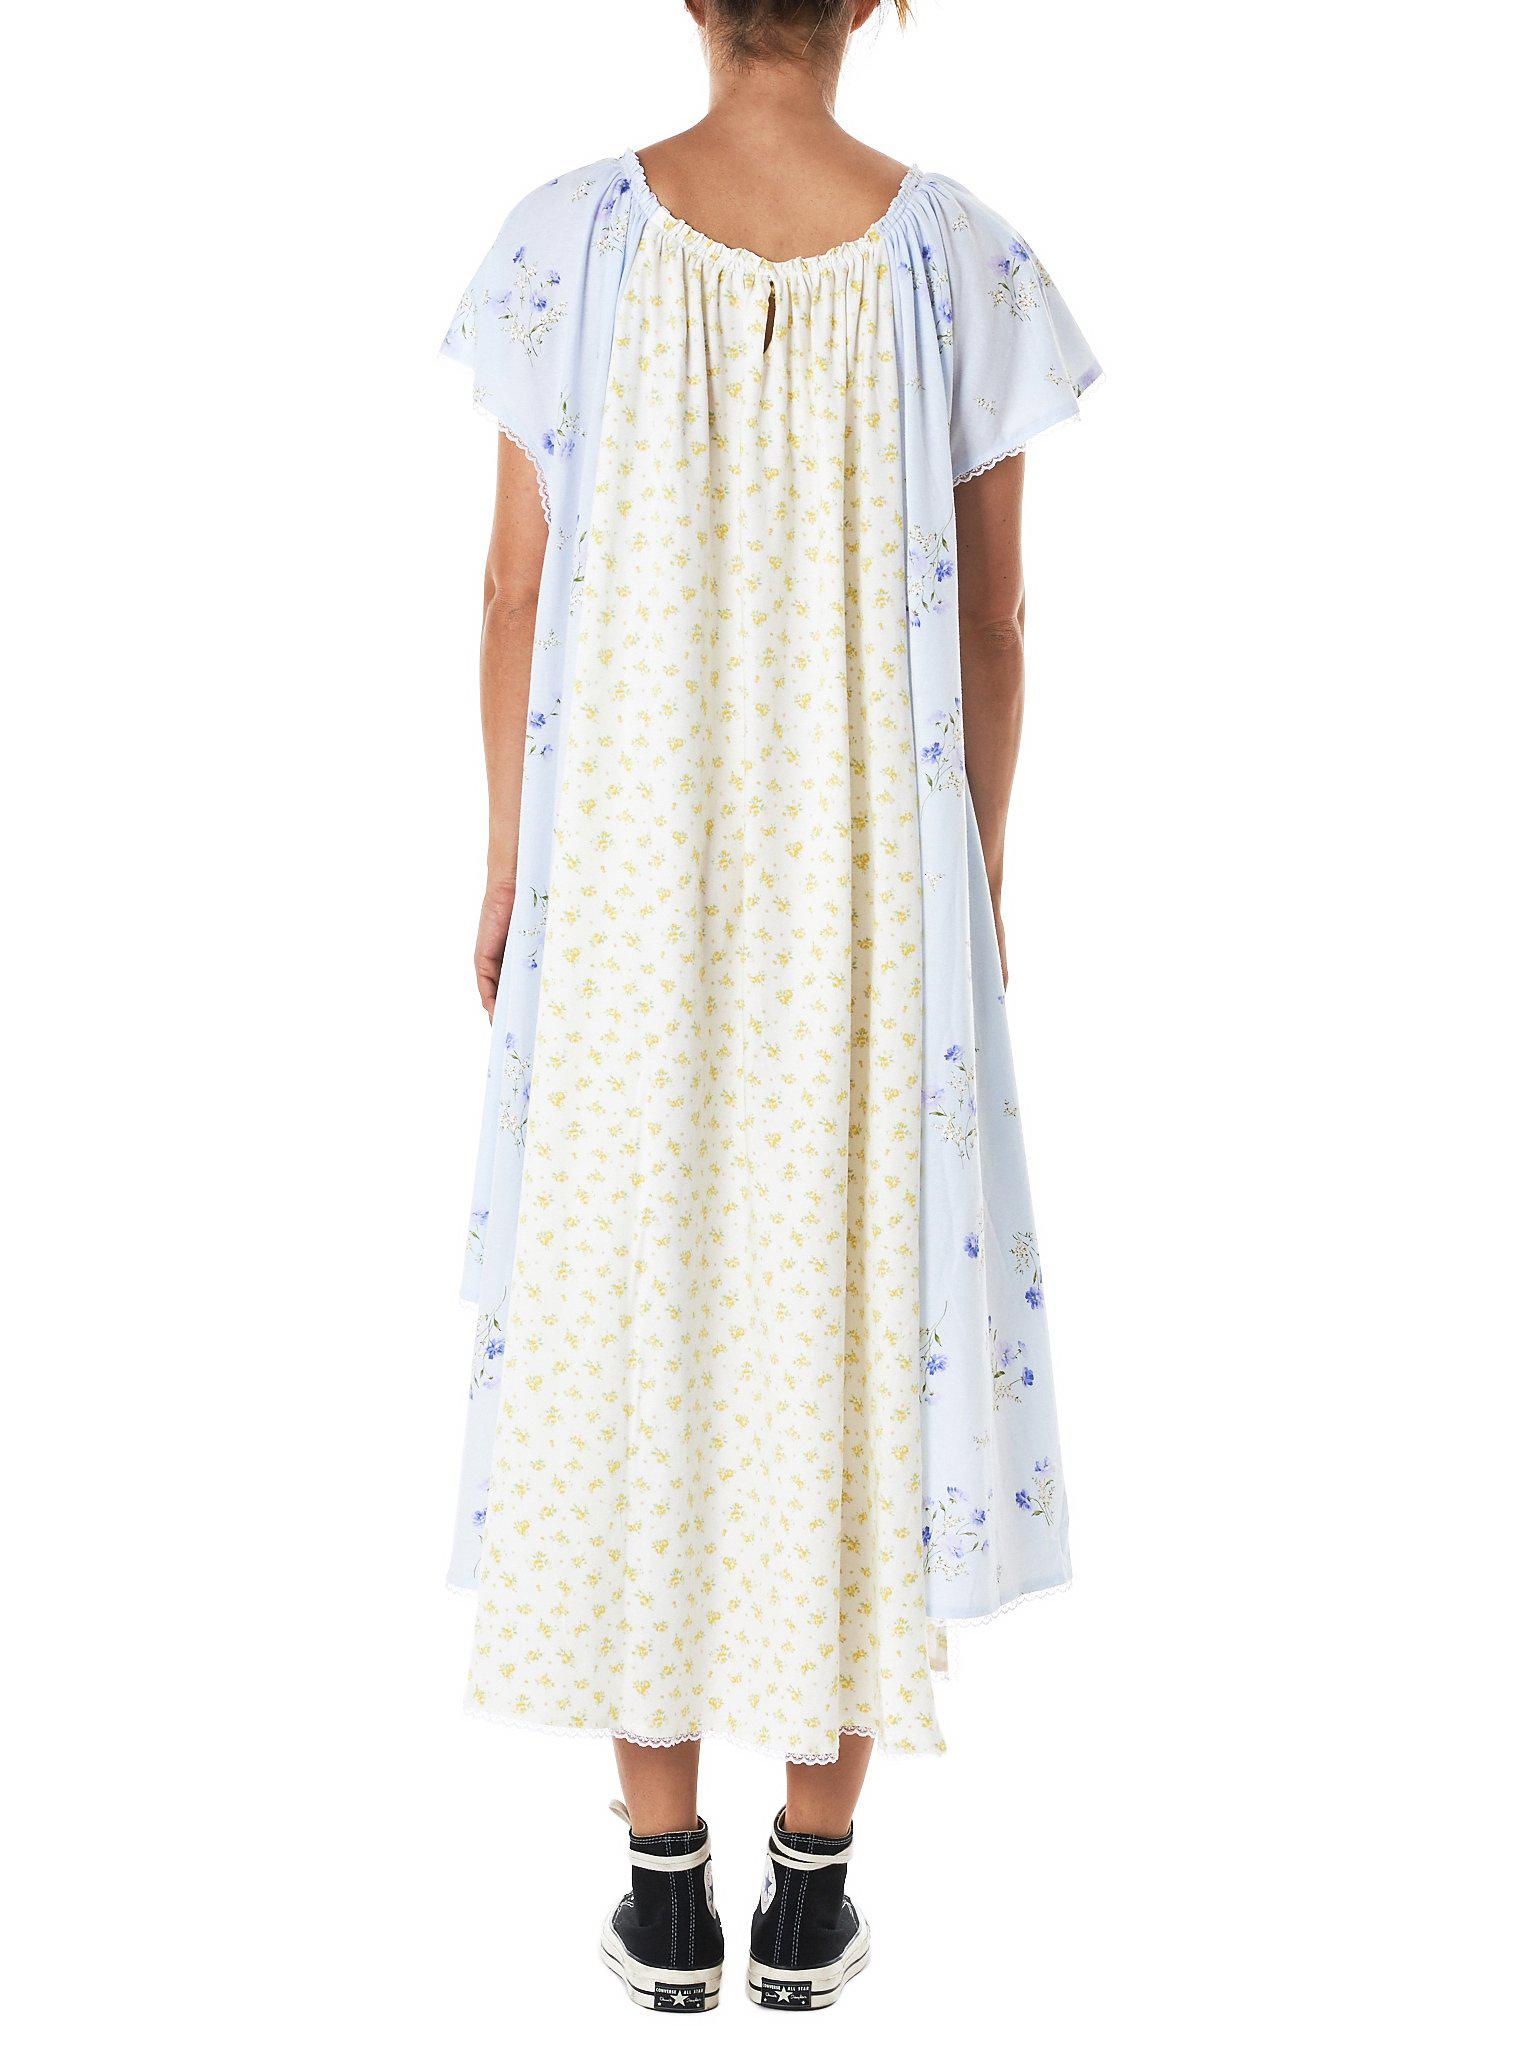 Lyst - Mikio Sakabe Floral Duster Dress